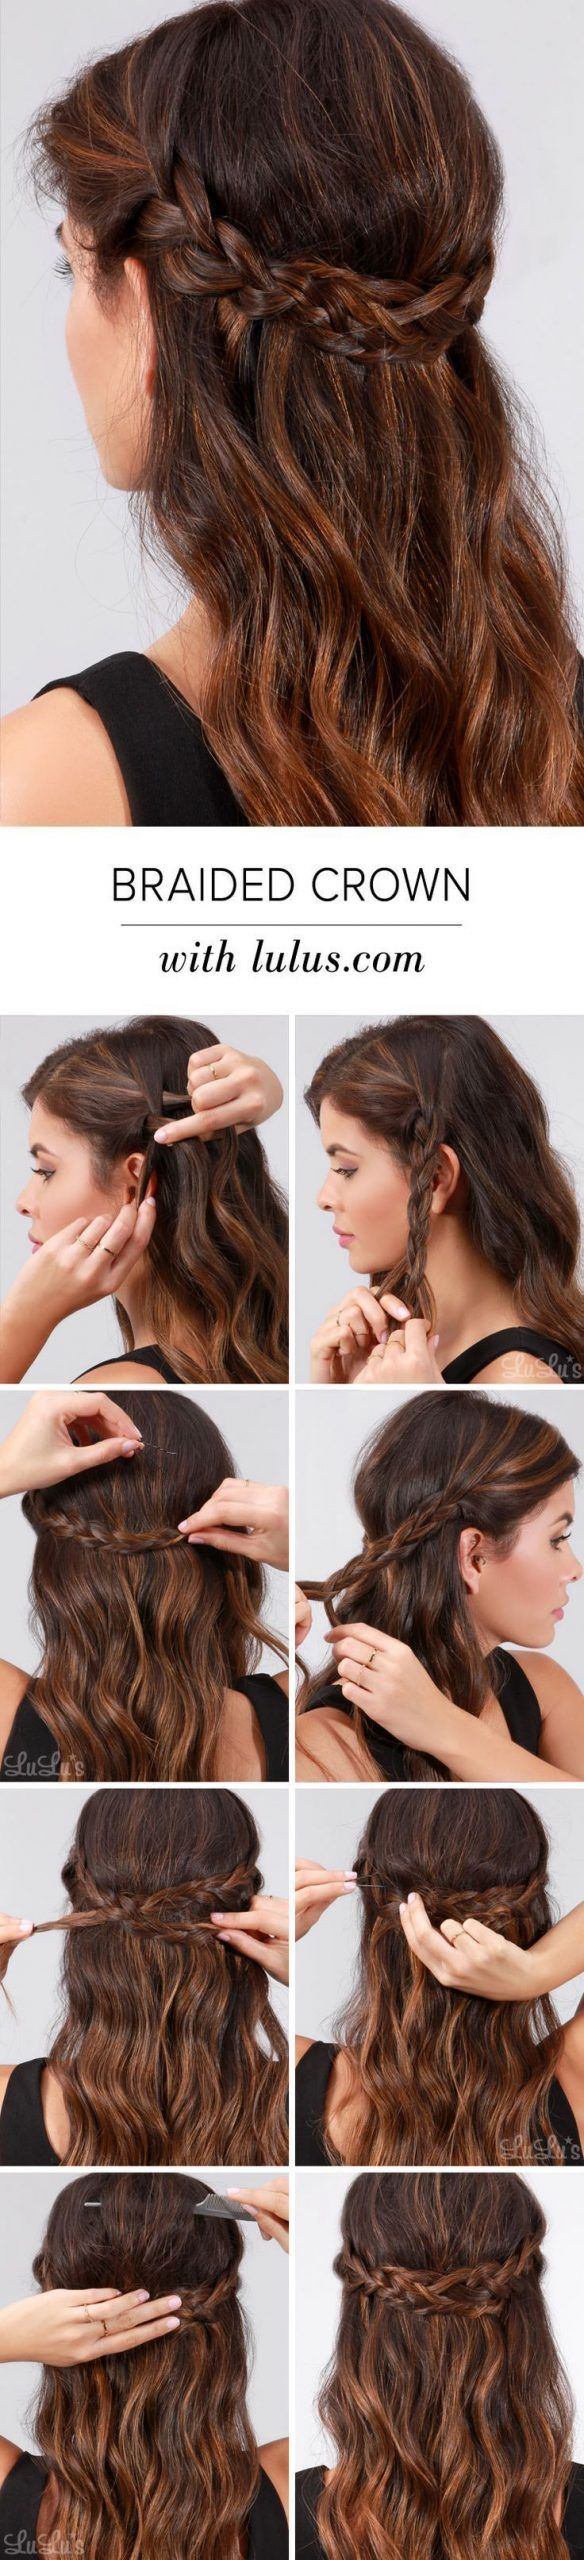 Super Simple DIY Braided Hairstyles for Wedding Tutorials - Pretty Braided ...#braided #diy #hairstyles #pretty #simple #super #tutorials #wedding